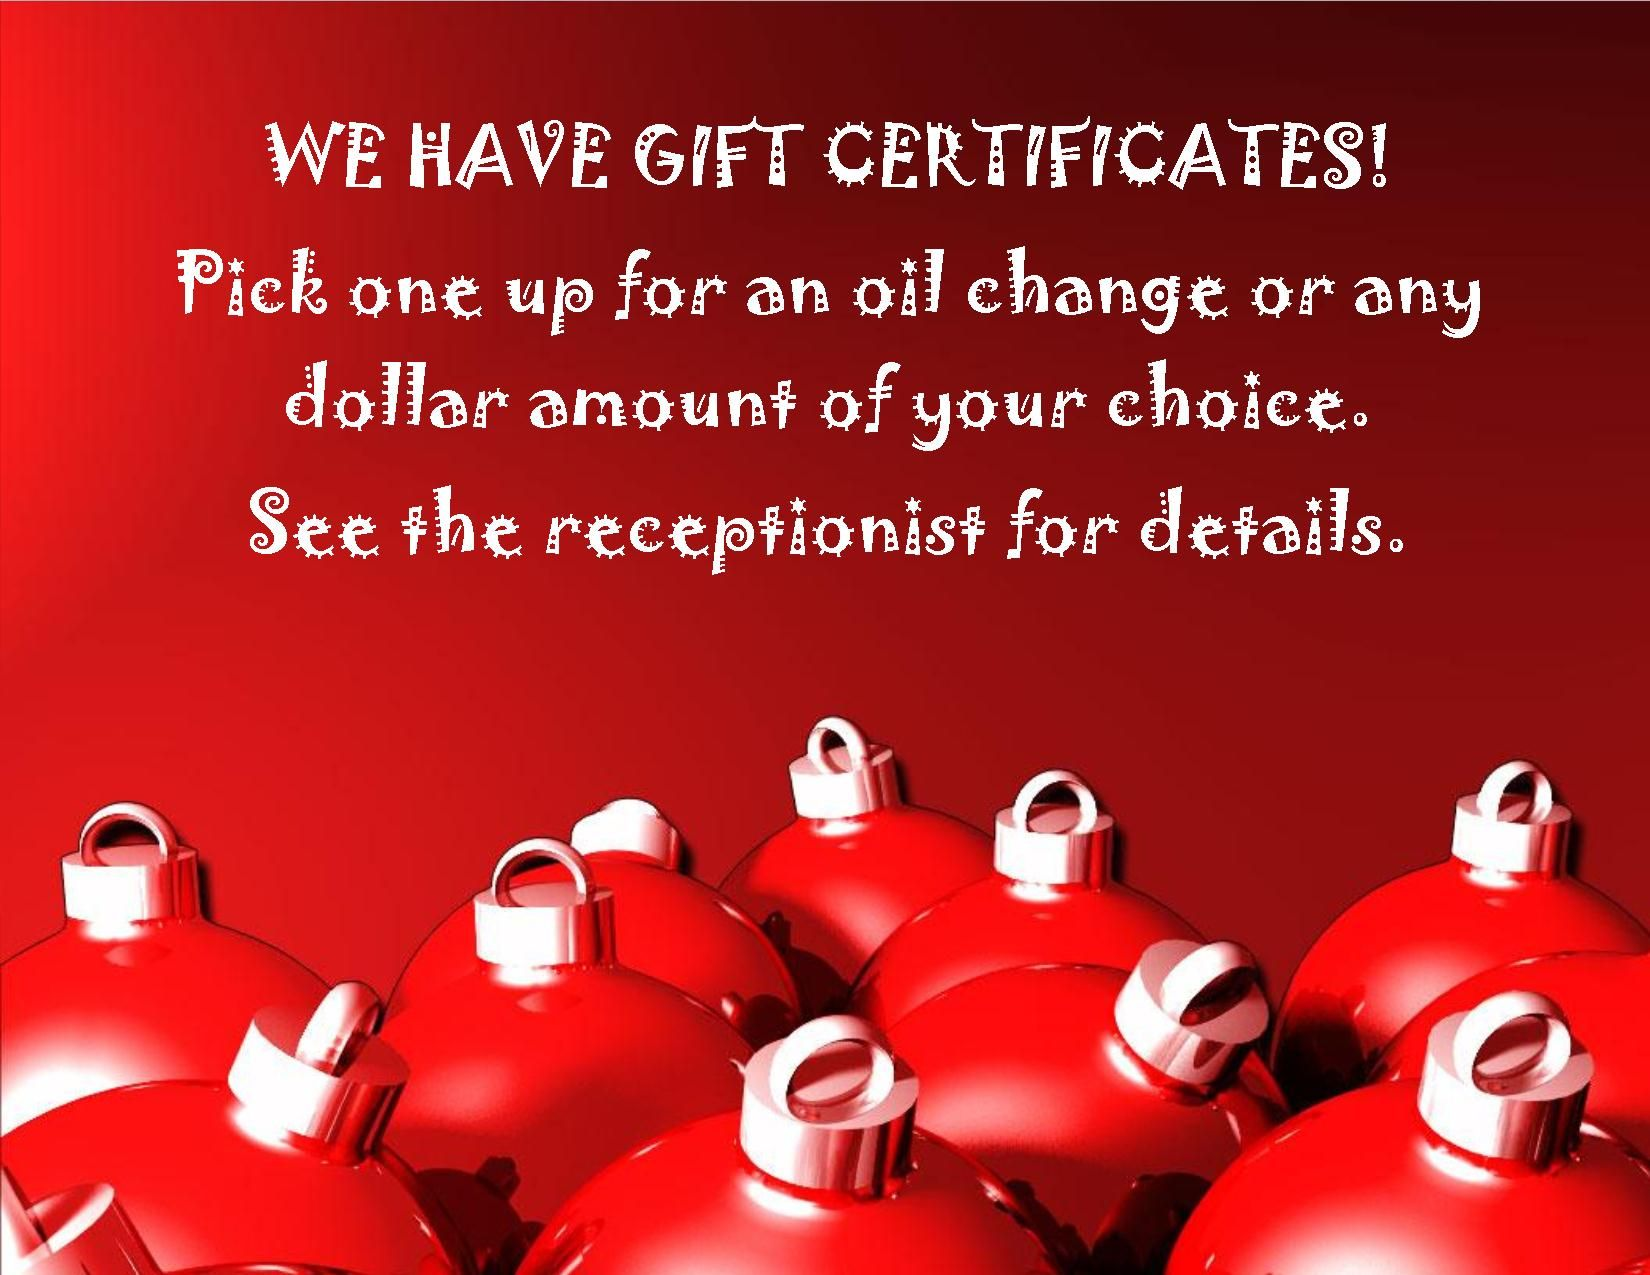 We Have Gift Certificates Oil Change Or Any Dollar Amount You Choose Stop At The Receptionist To Purchase Ford Parts Gift Certificates